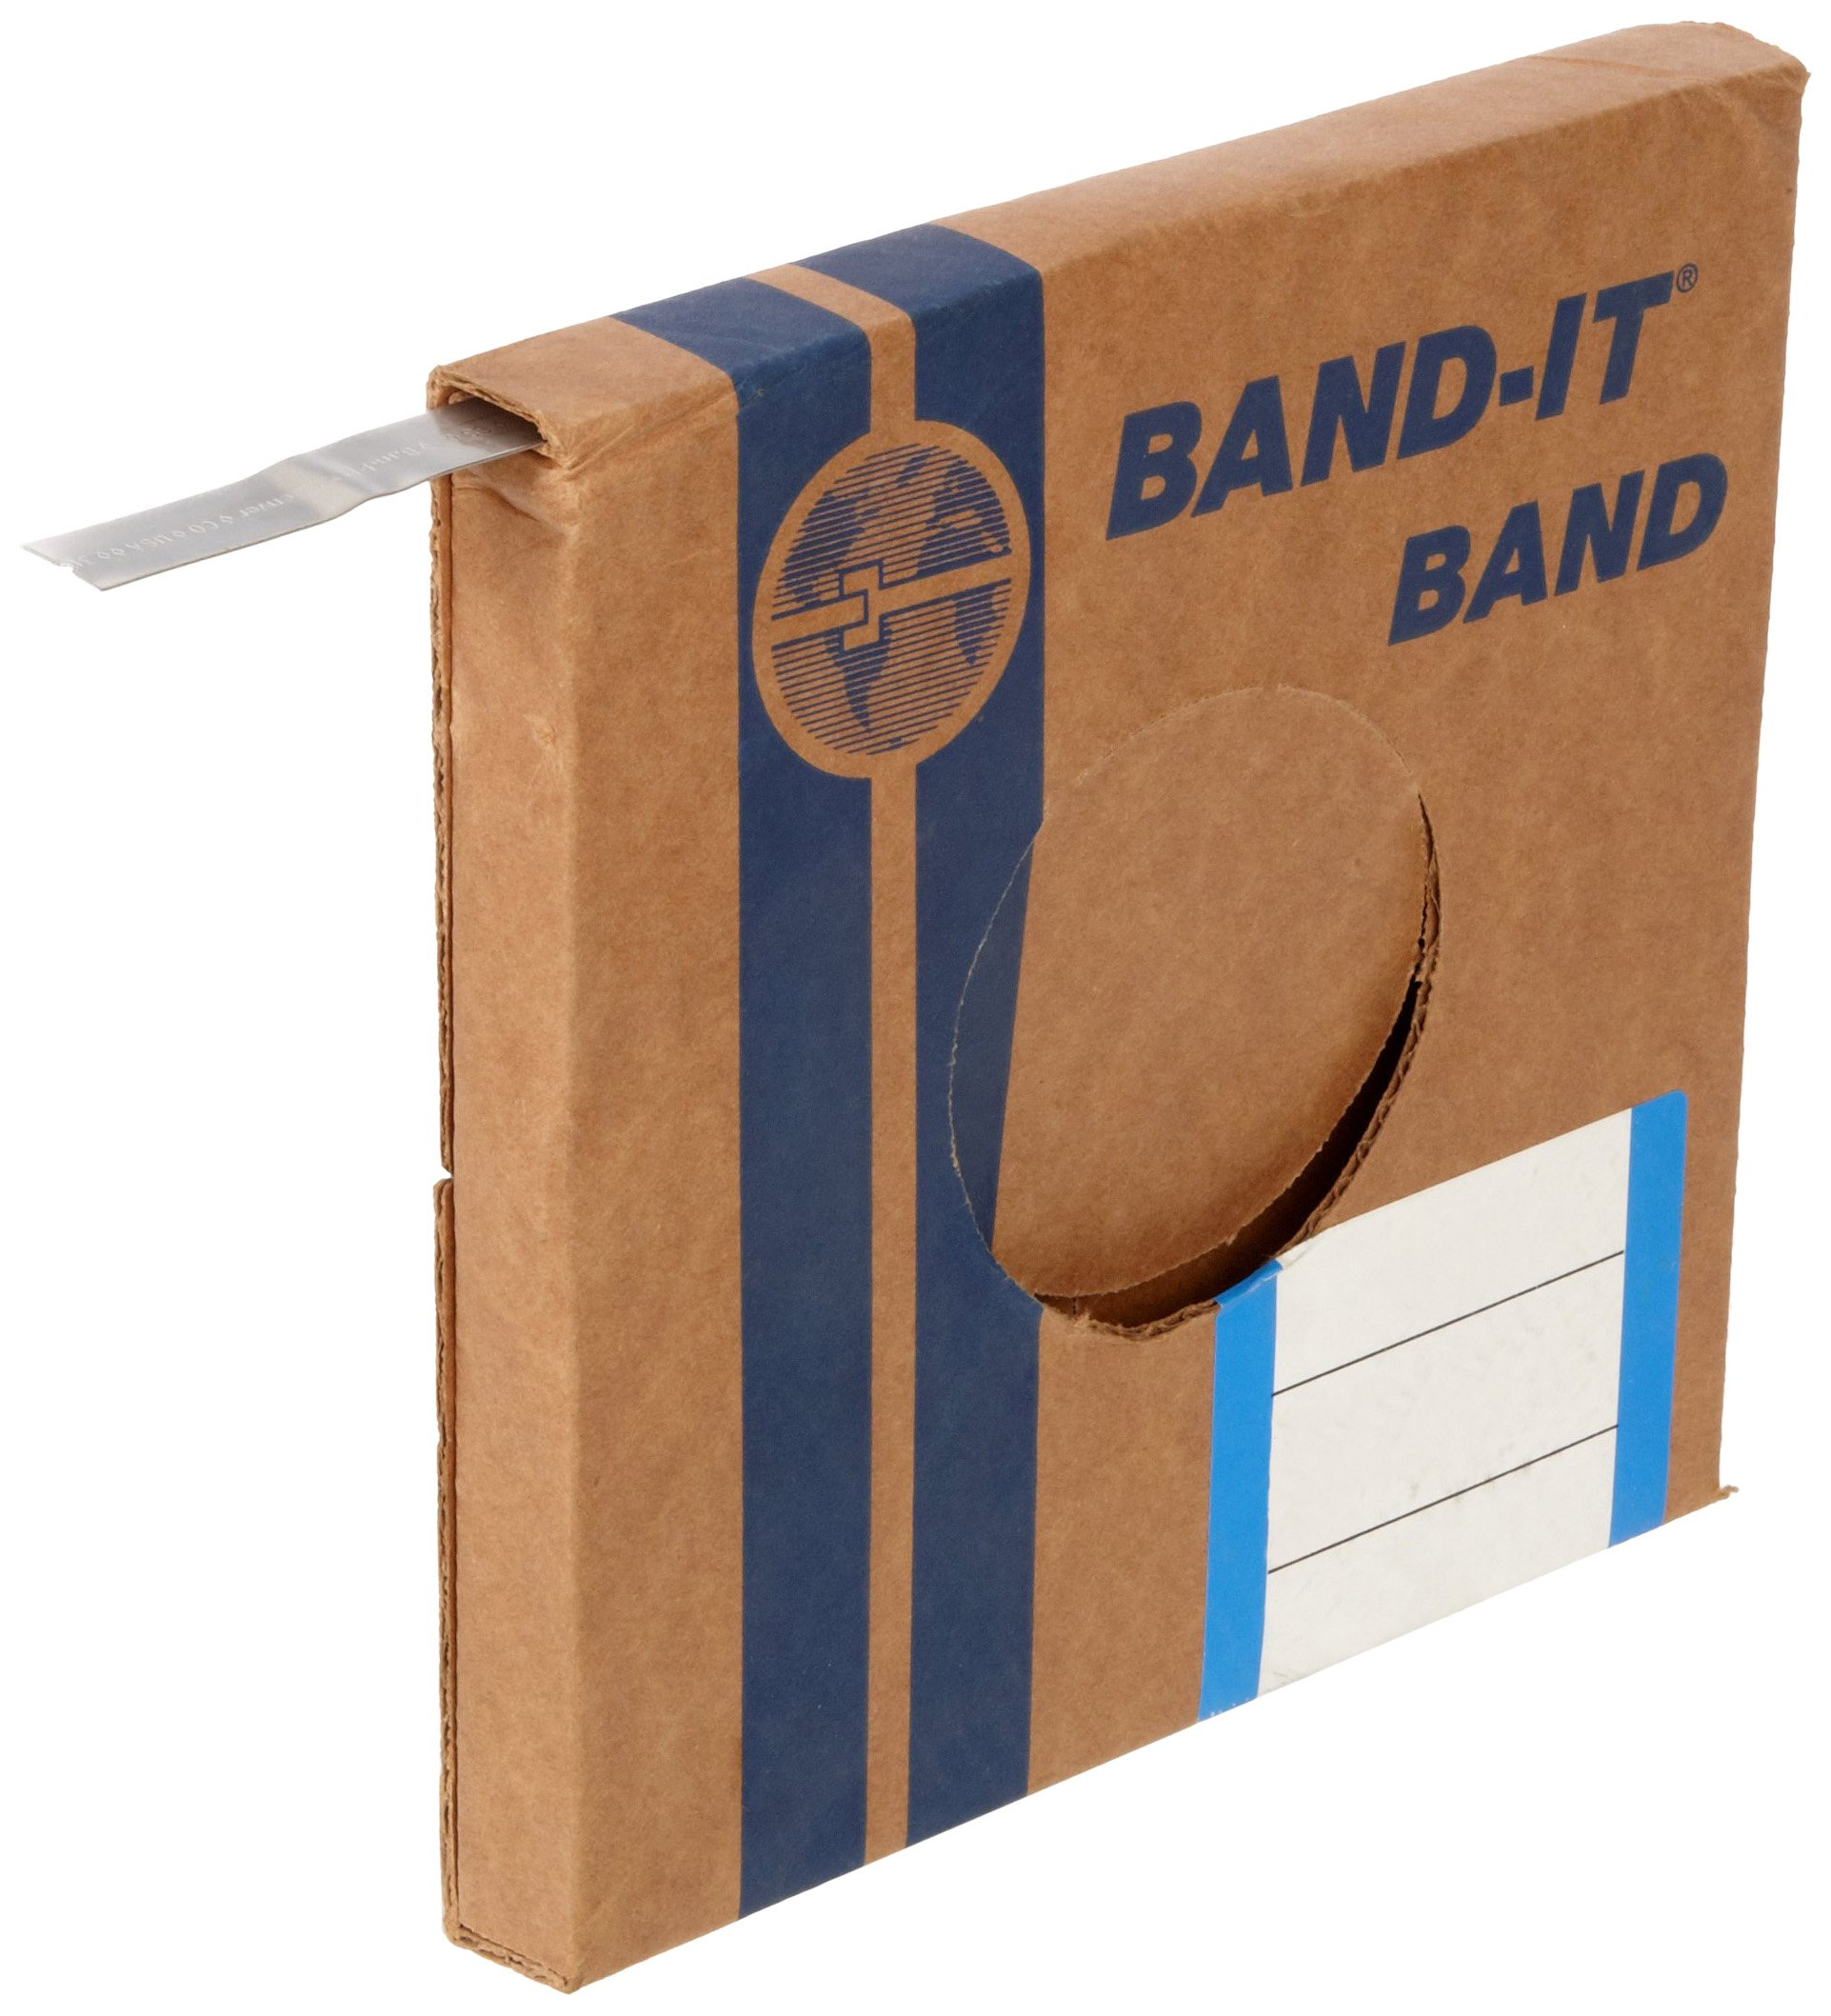 BAND-IT C40699 316 Stainless Steel Uncoated Band, 3/4'' Width X 0.030'' Thick, 100 Feet Roll